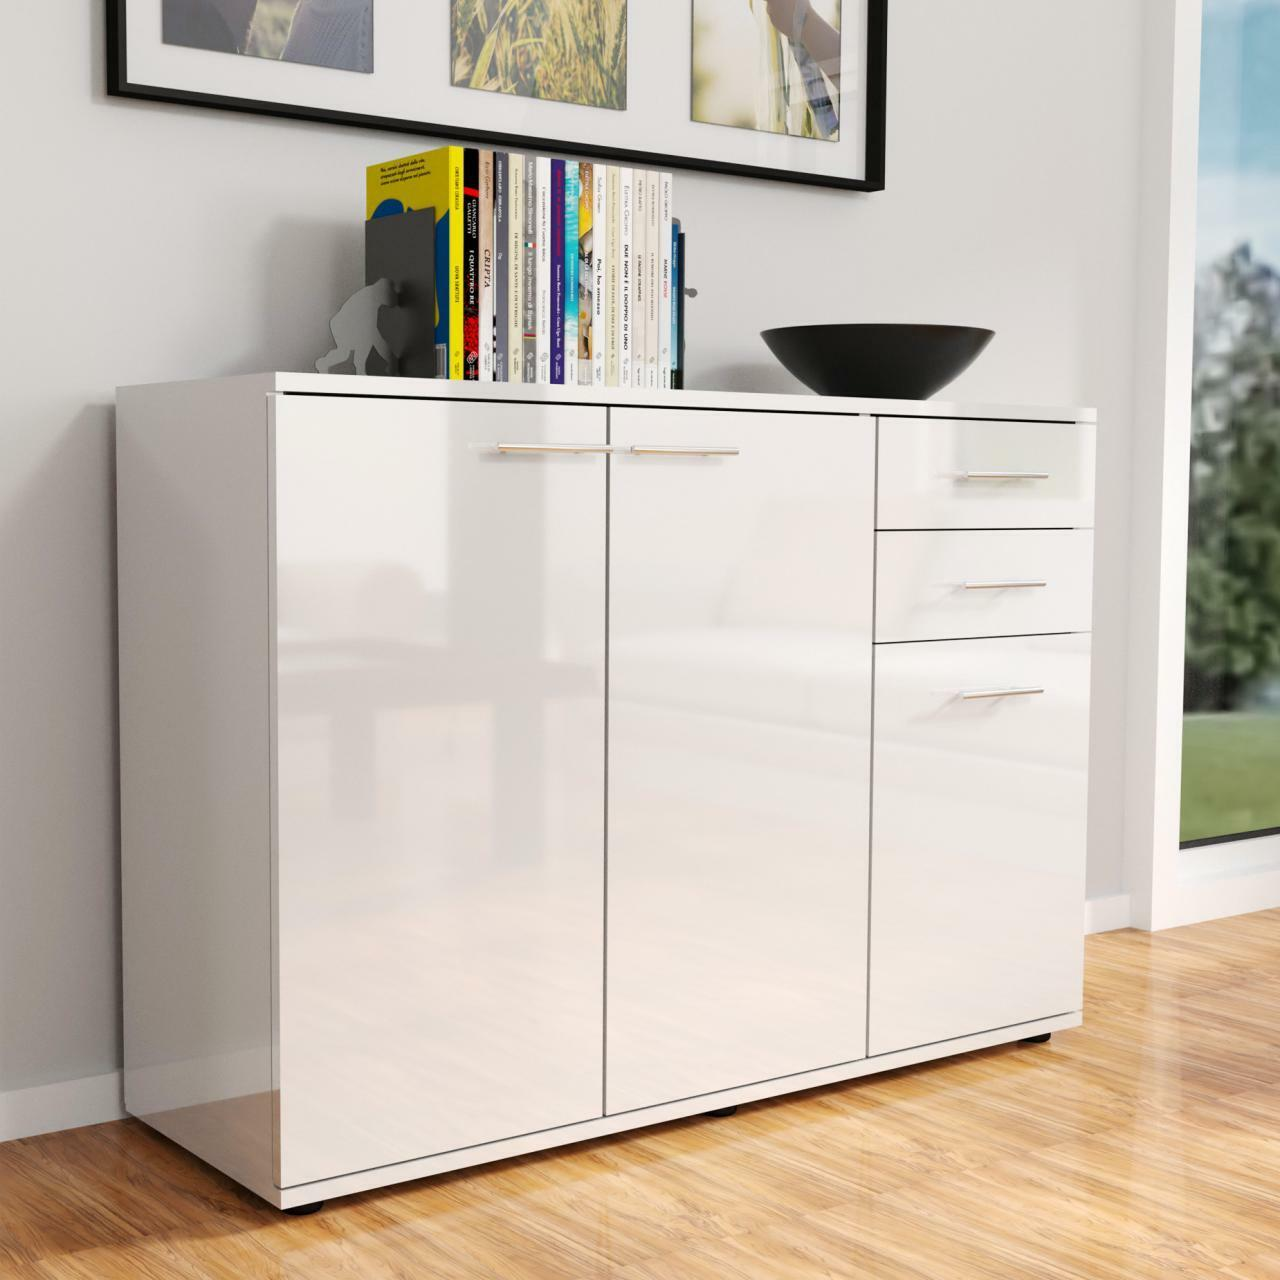 hochglanz kommode modern sideboard highboard mehrzweckschrank anrichte weiss eur 92 99. Black Bedroom Furniture Sets. Home Design Ideas